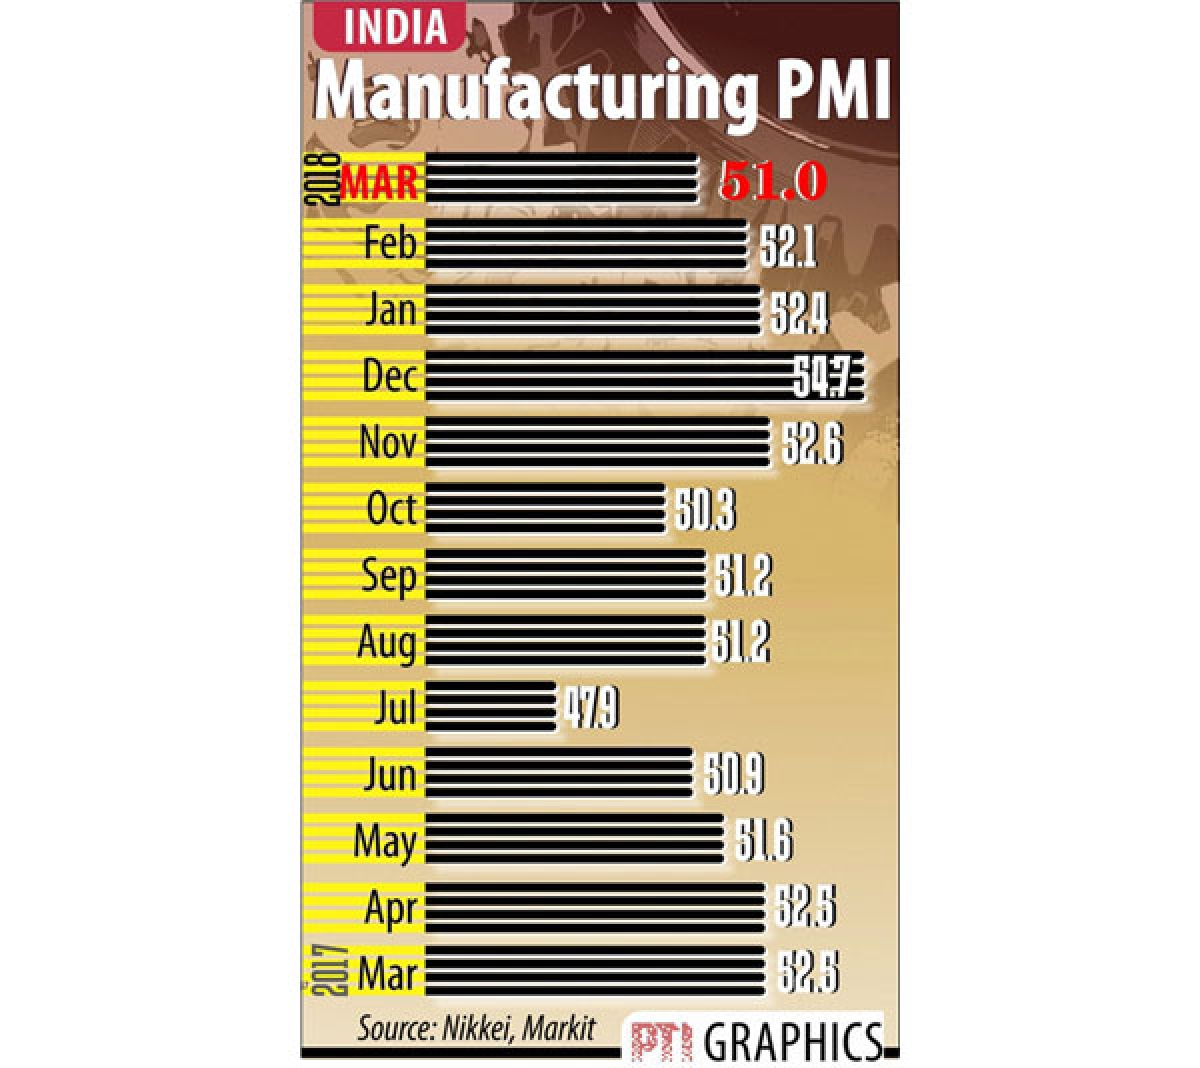 Factory activity slips to 5-month low in March